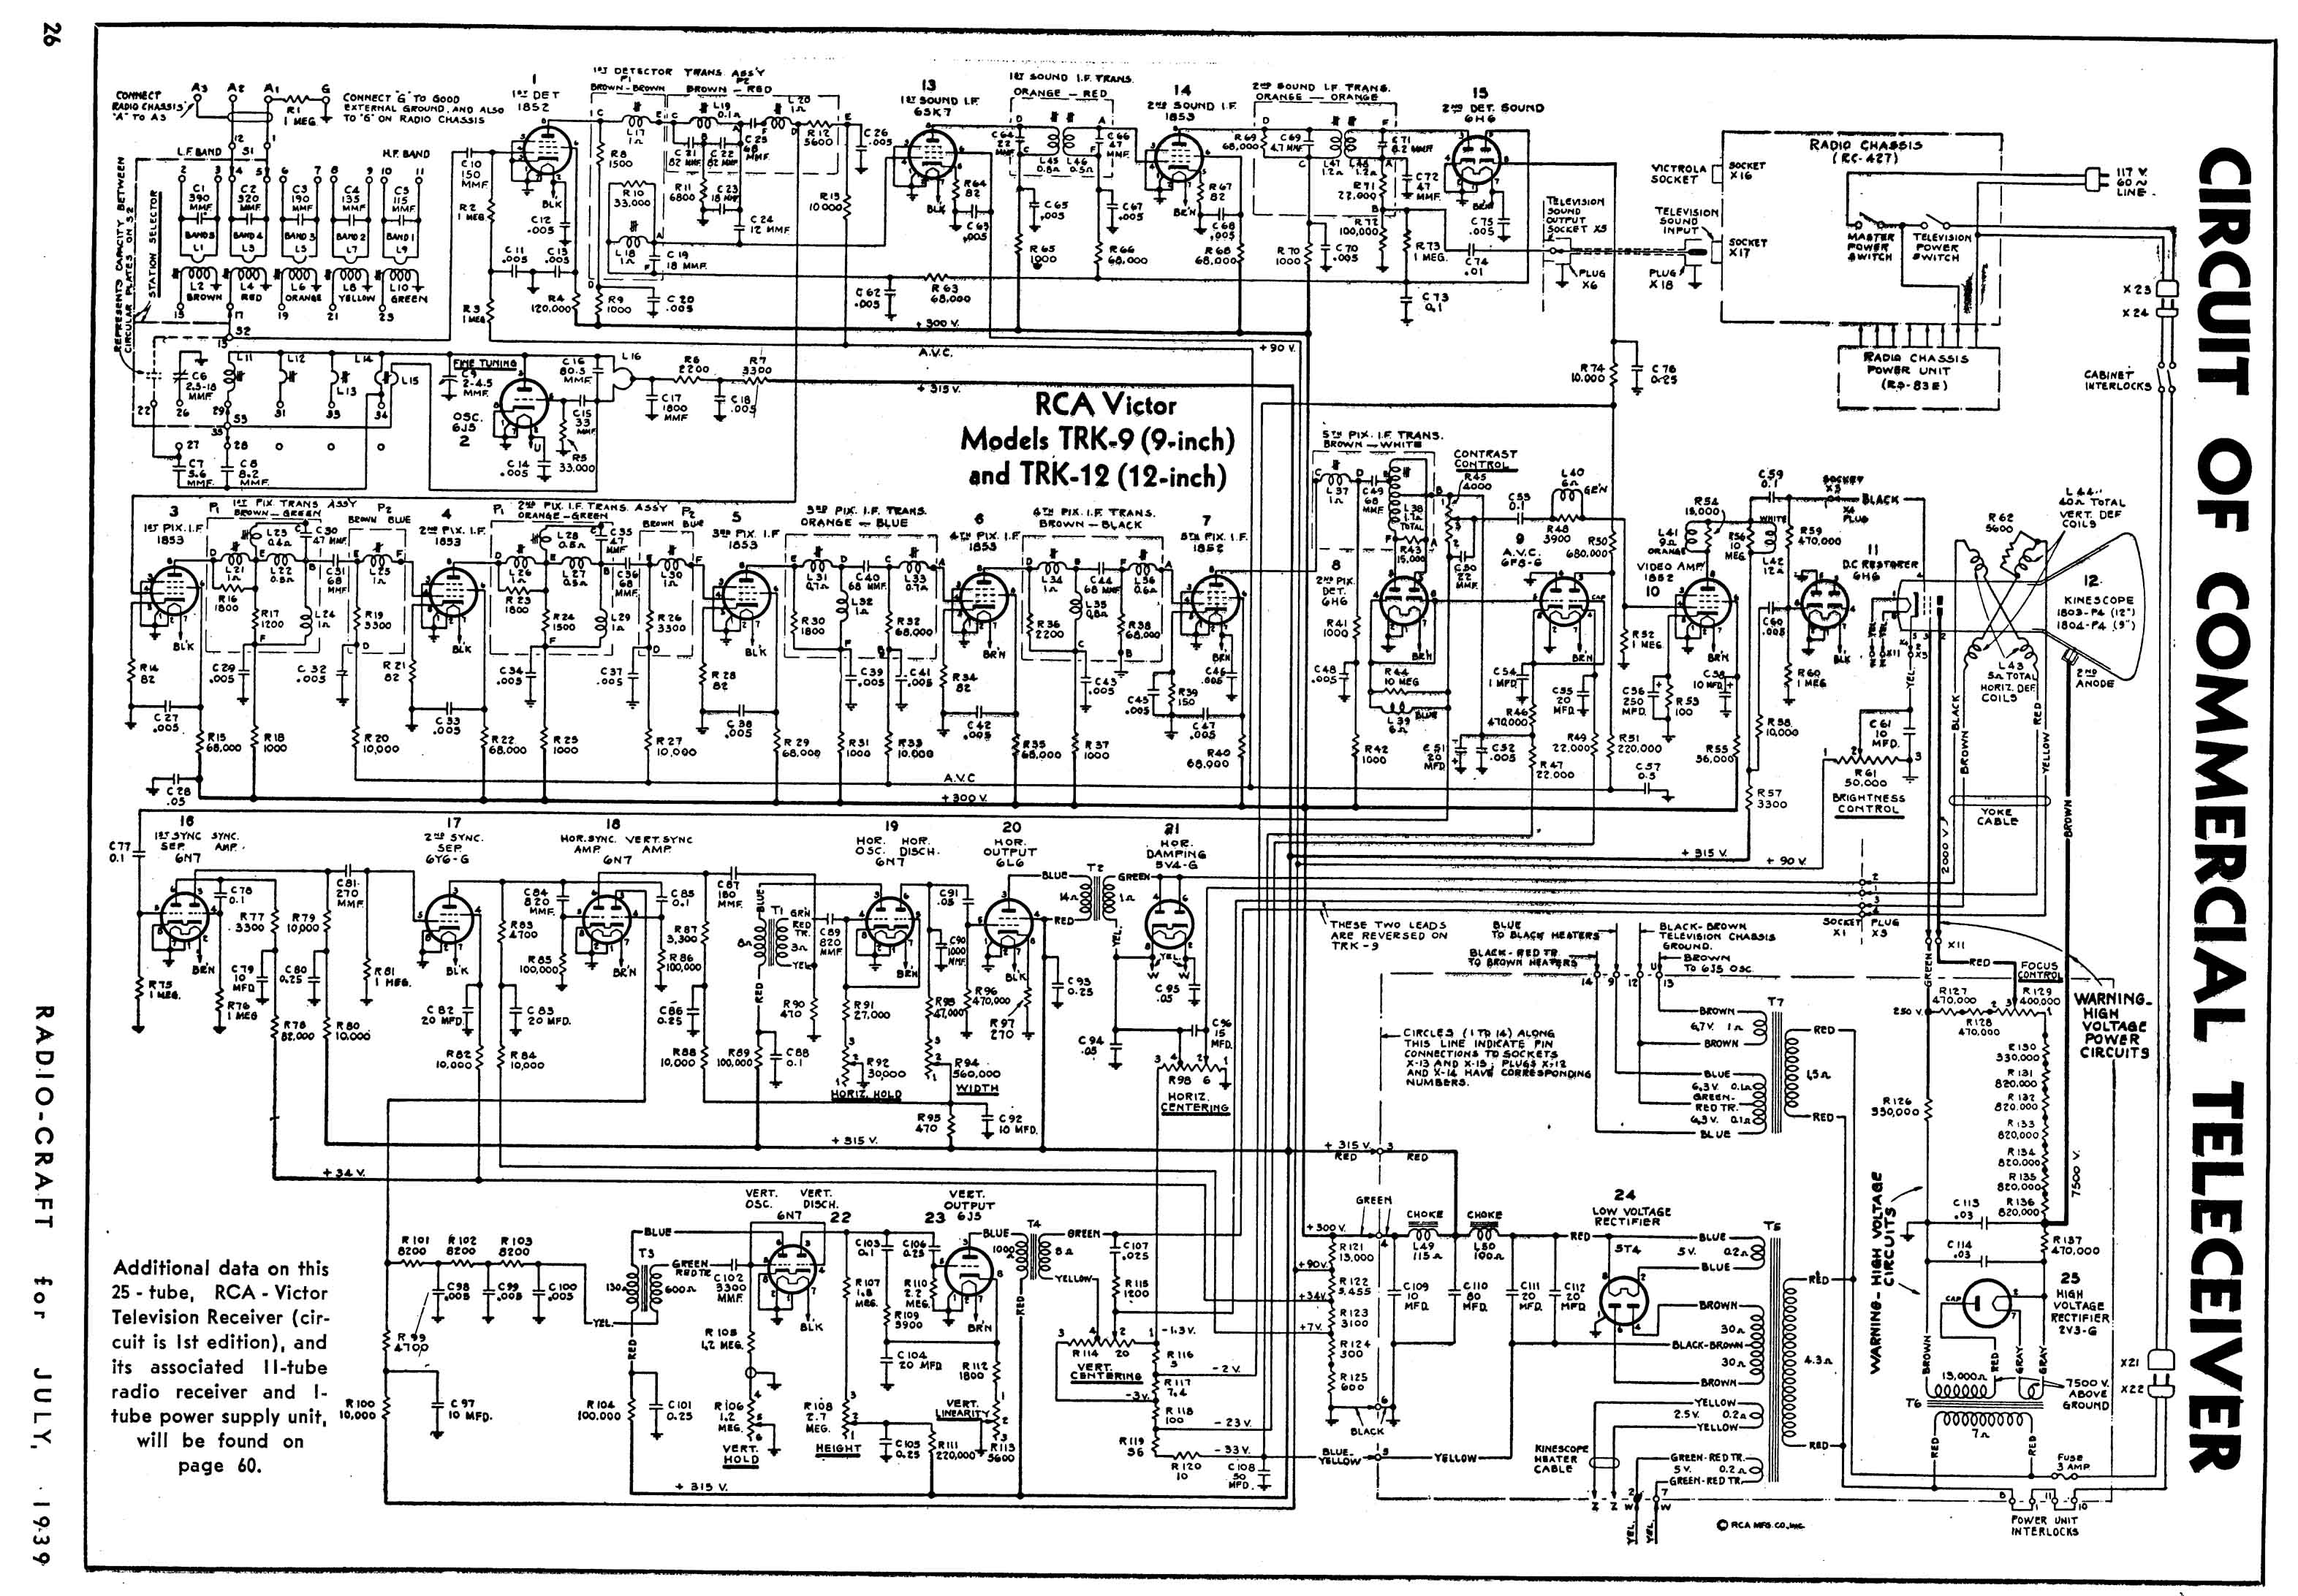 Tv Schematic Diagrams Everything About Wiring Diagram Electronic Circuits Schematics For Televisions Library Rh 77 Codingcommunity De Mitsubishi Lg